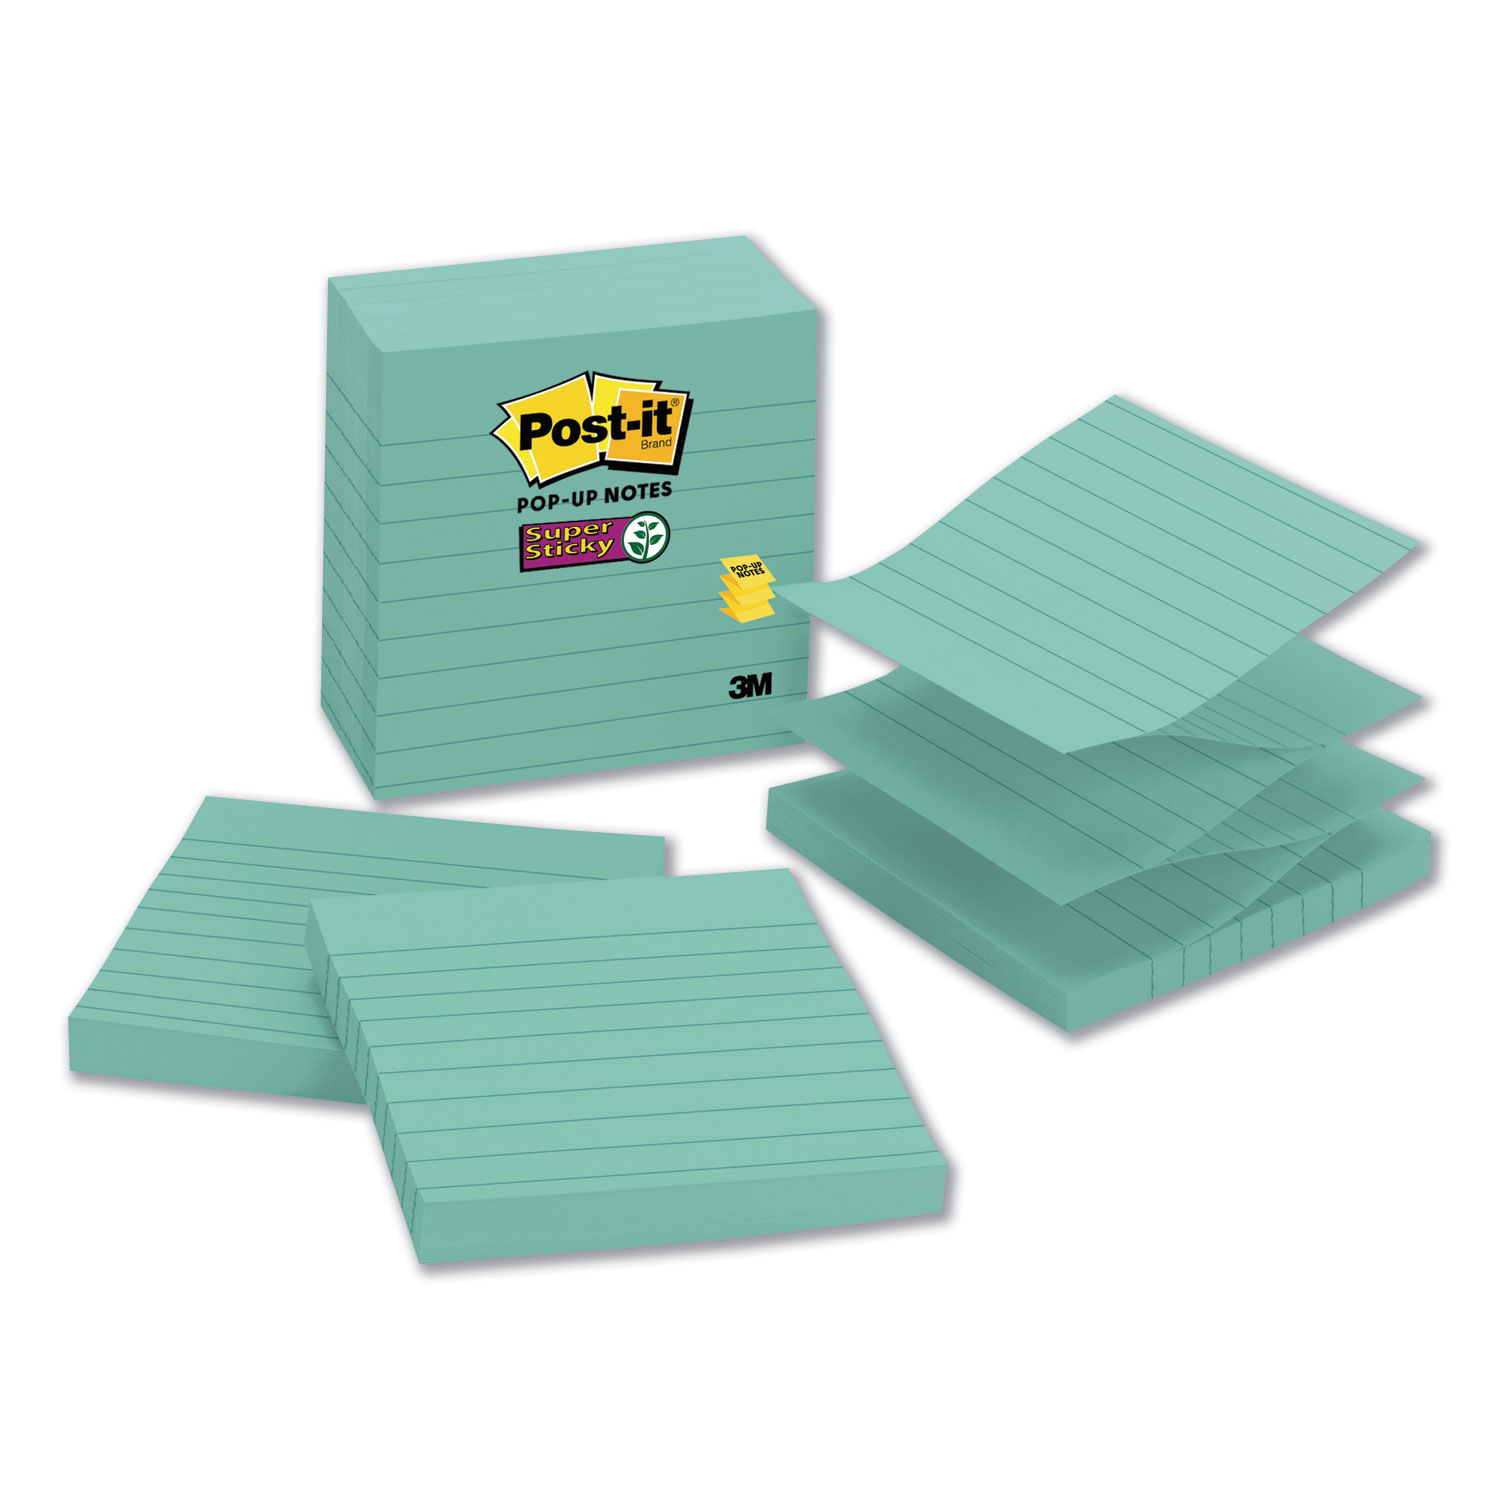 Pop-up Notes Refill, Lined, 4 x 4, Aqua Wave, 90-Sheet, 5/Pack